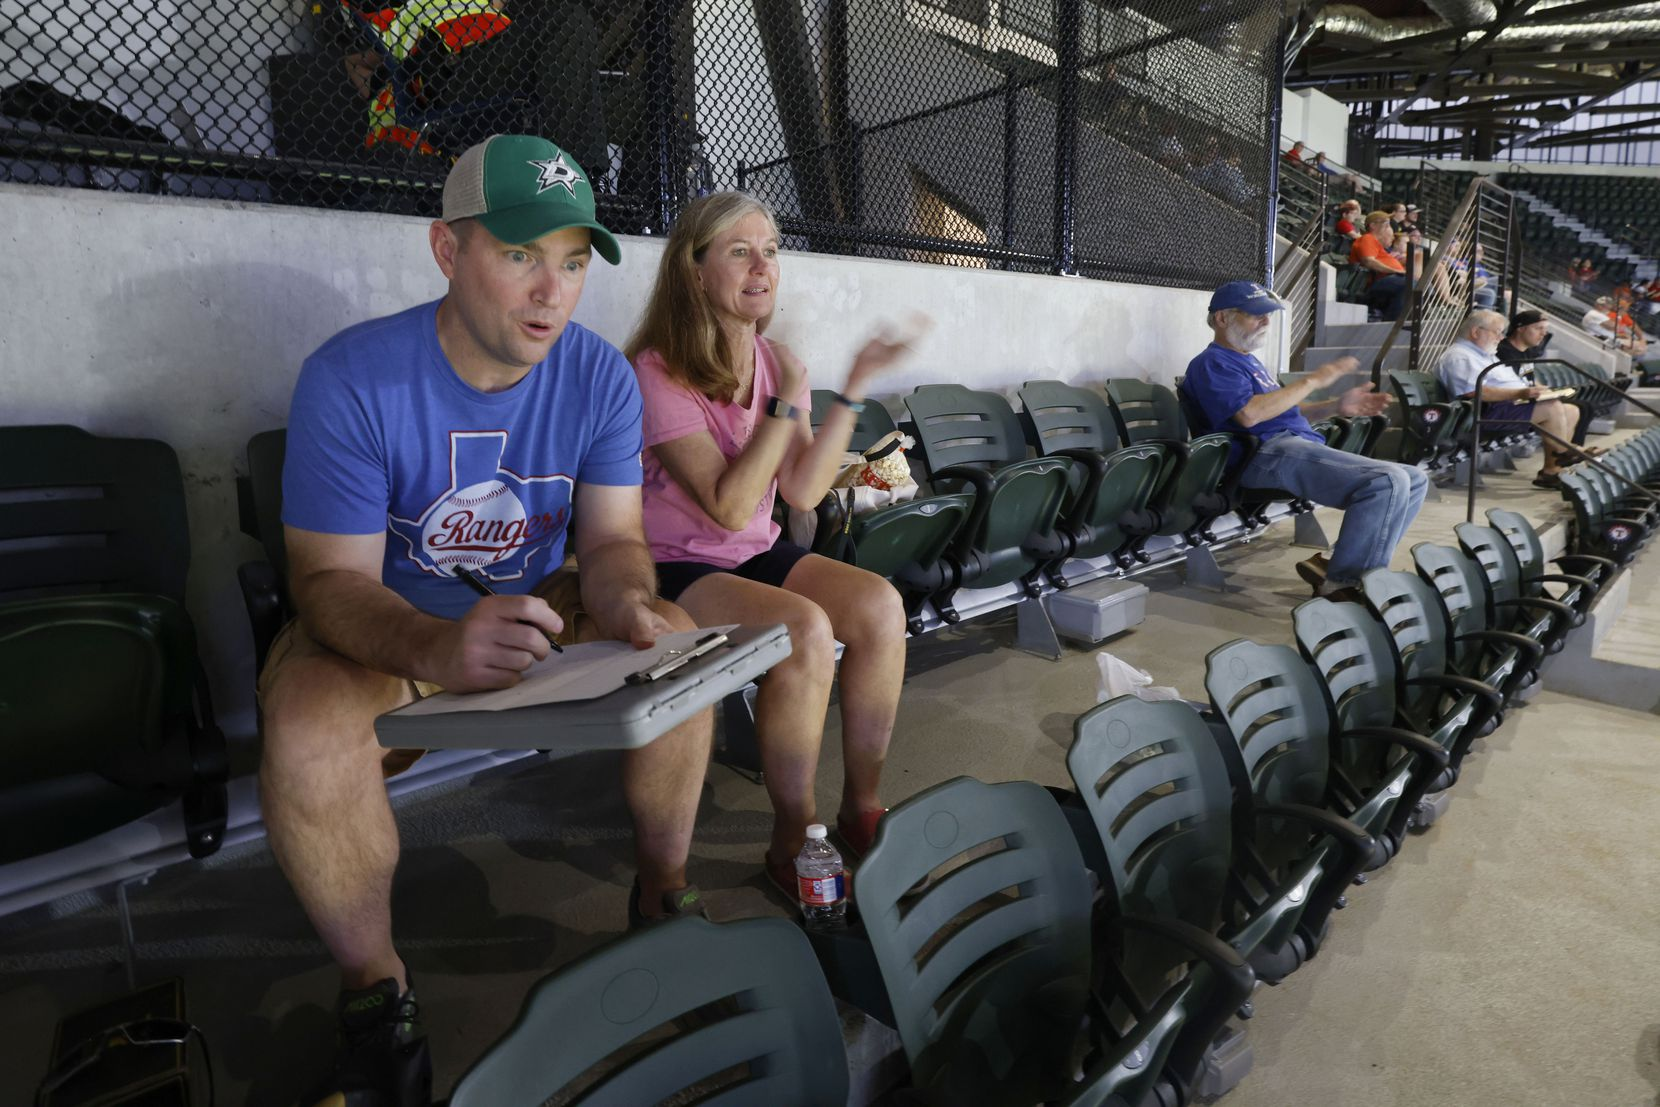 Season ticket holders Dallas Brewton, of Albuquerque, NM and  Pam Lunk of Arlington, watch the Texas Rangers play during an MLB baseball game between the Texas Rangers and the Houston Astros in Arlington, Texas on Thursday, Sept. 16, 2021. (Michael Ainsworth/Special Contributor)